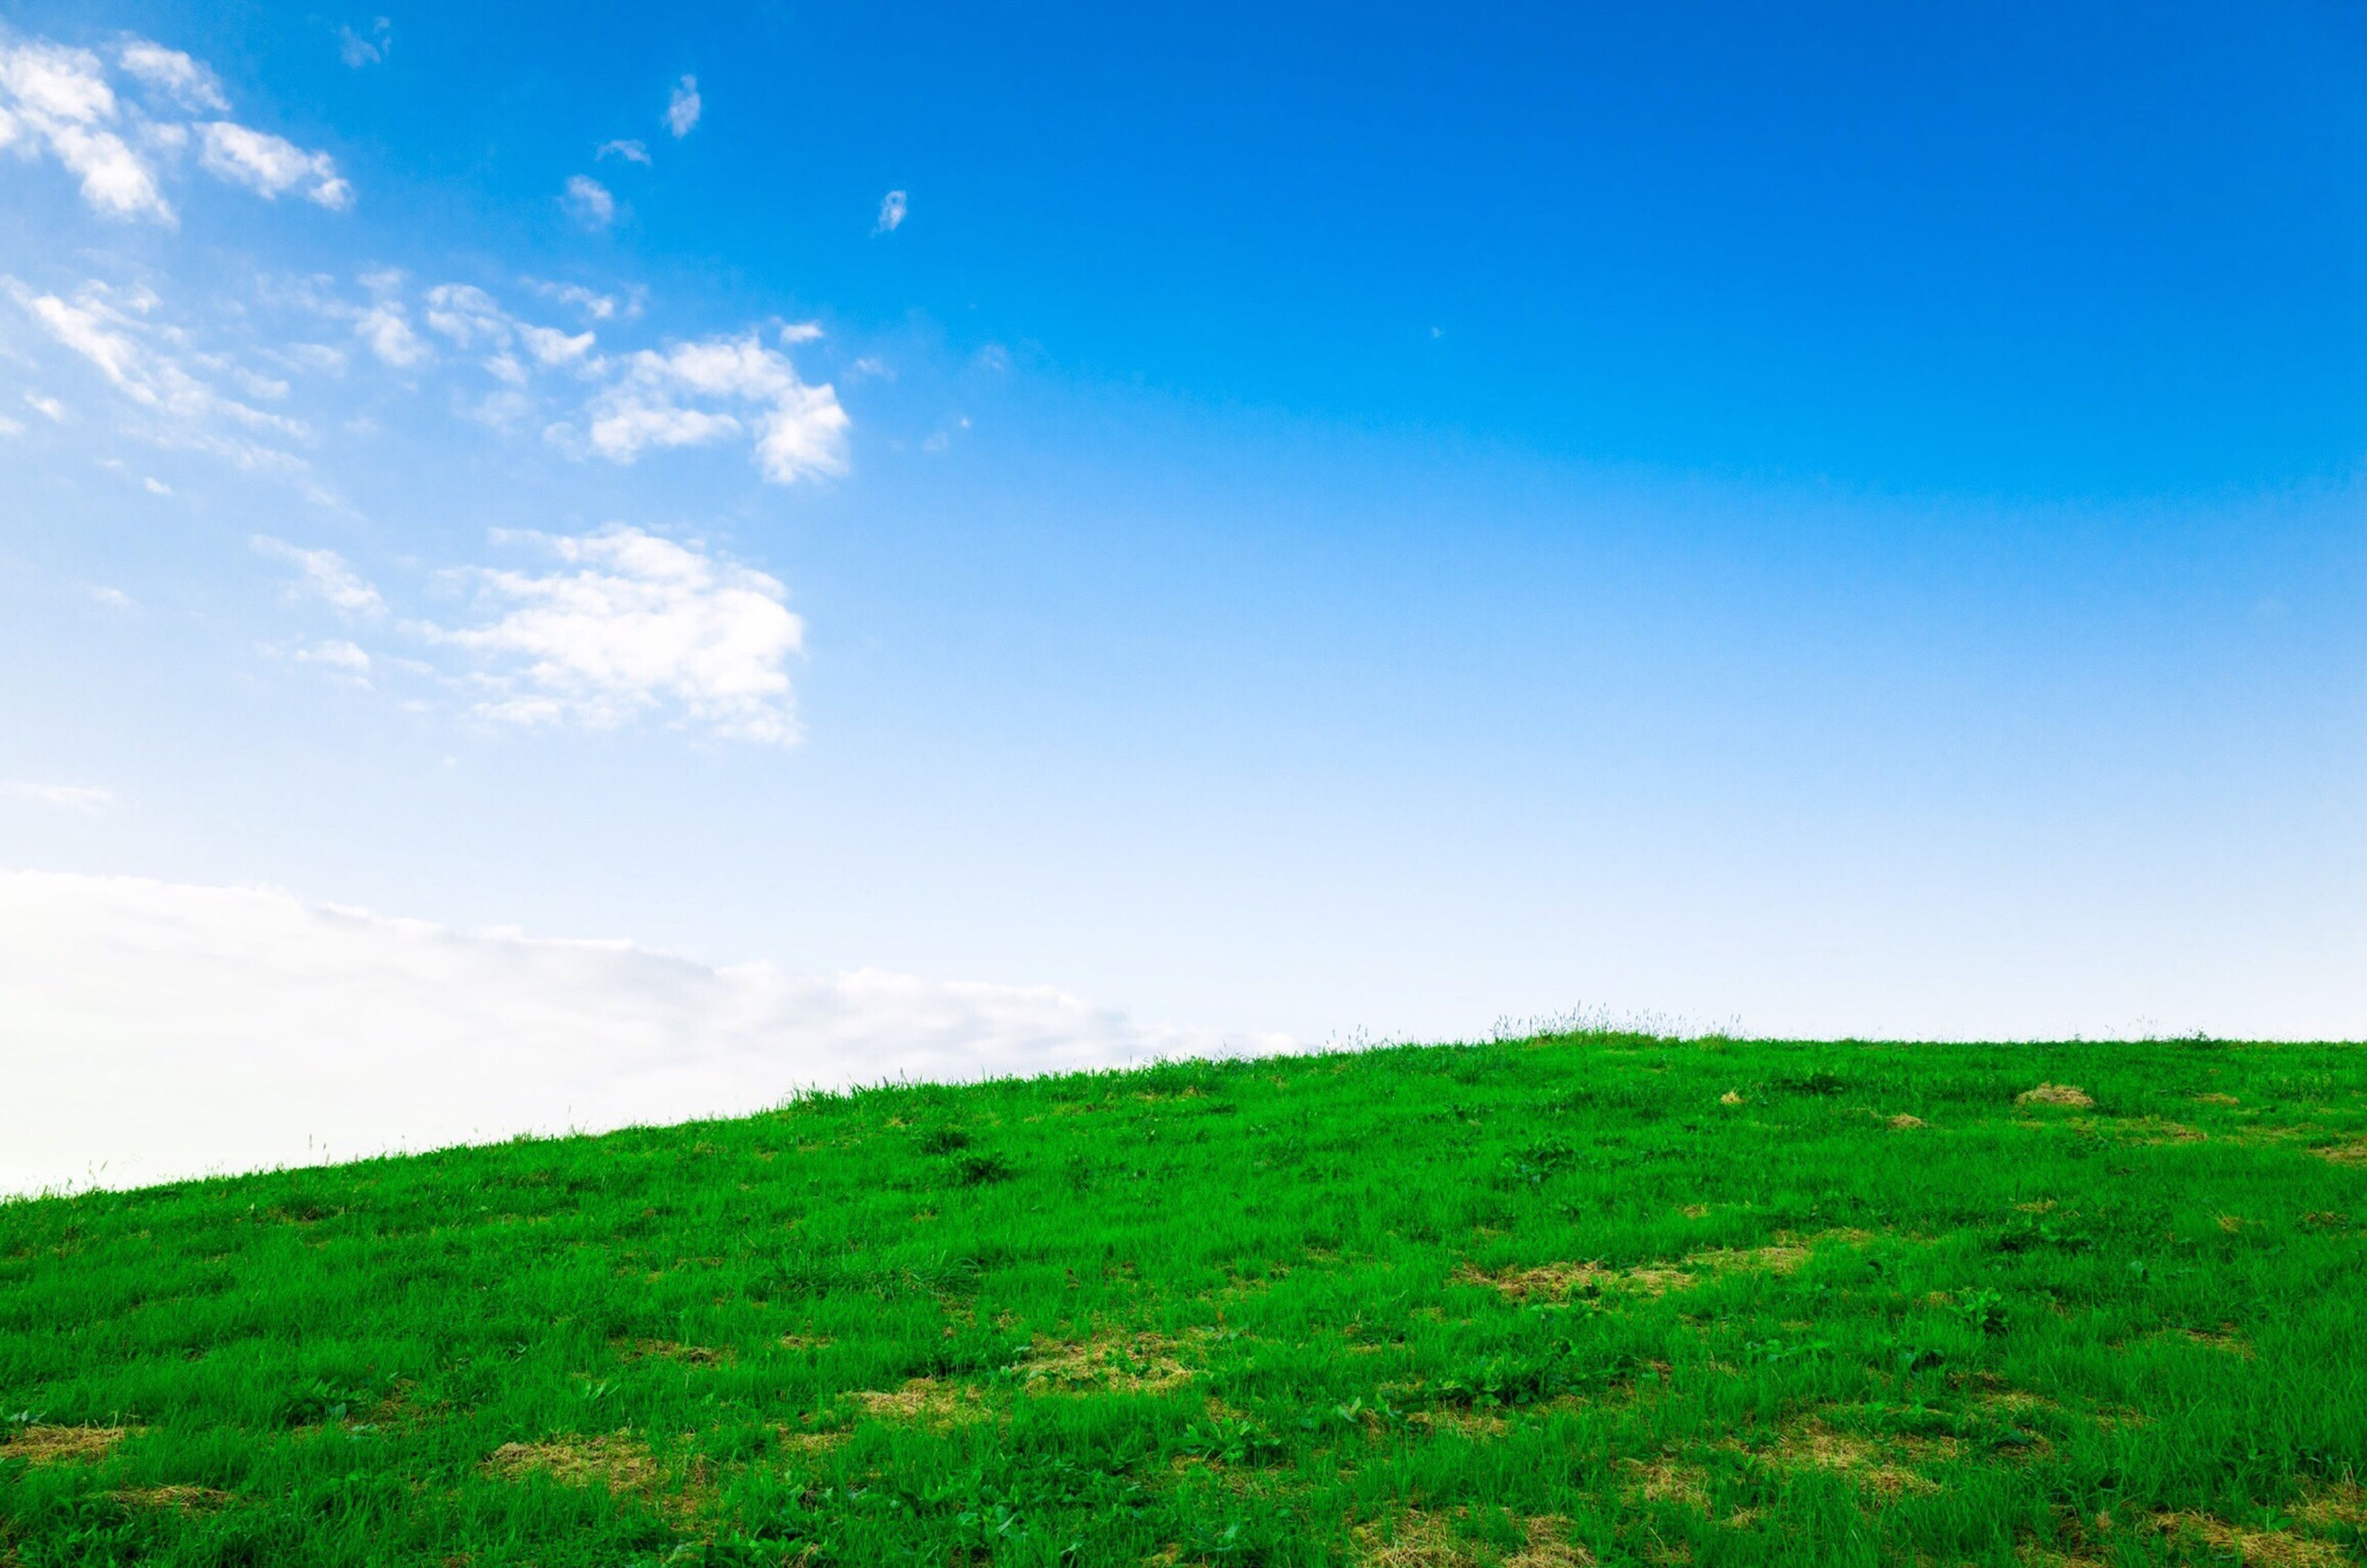 grass, blue, landscape, field, tranquility, tranquil scene, grassy, sky, scenics, beauty in nature, green color, nature, clear sky, copy space, horizon over land, non-urban scene, growth, day, remote, green